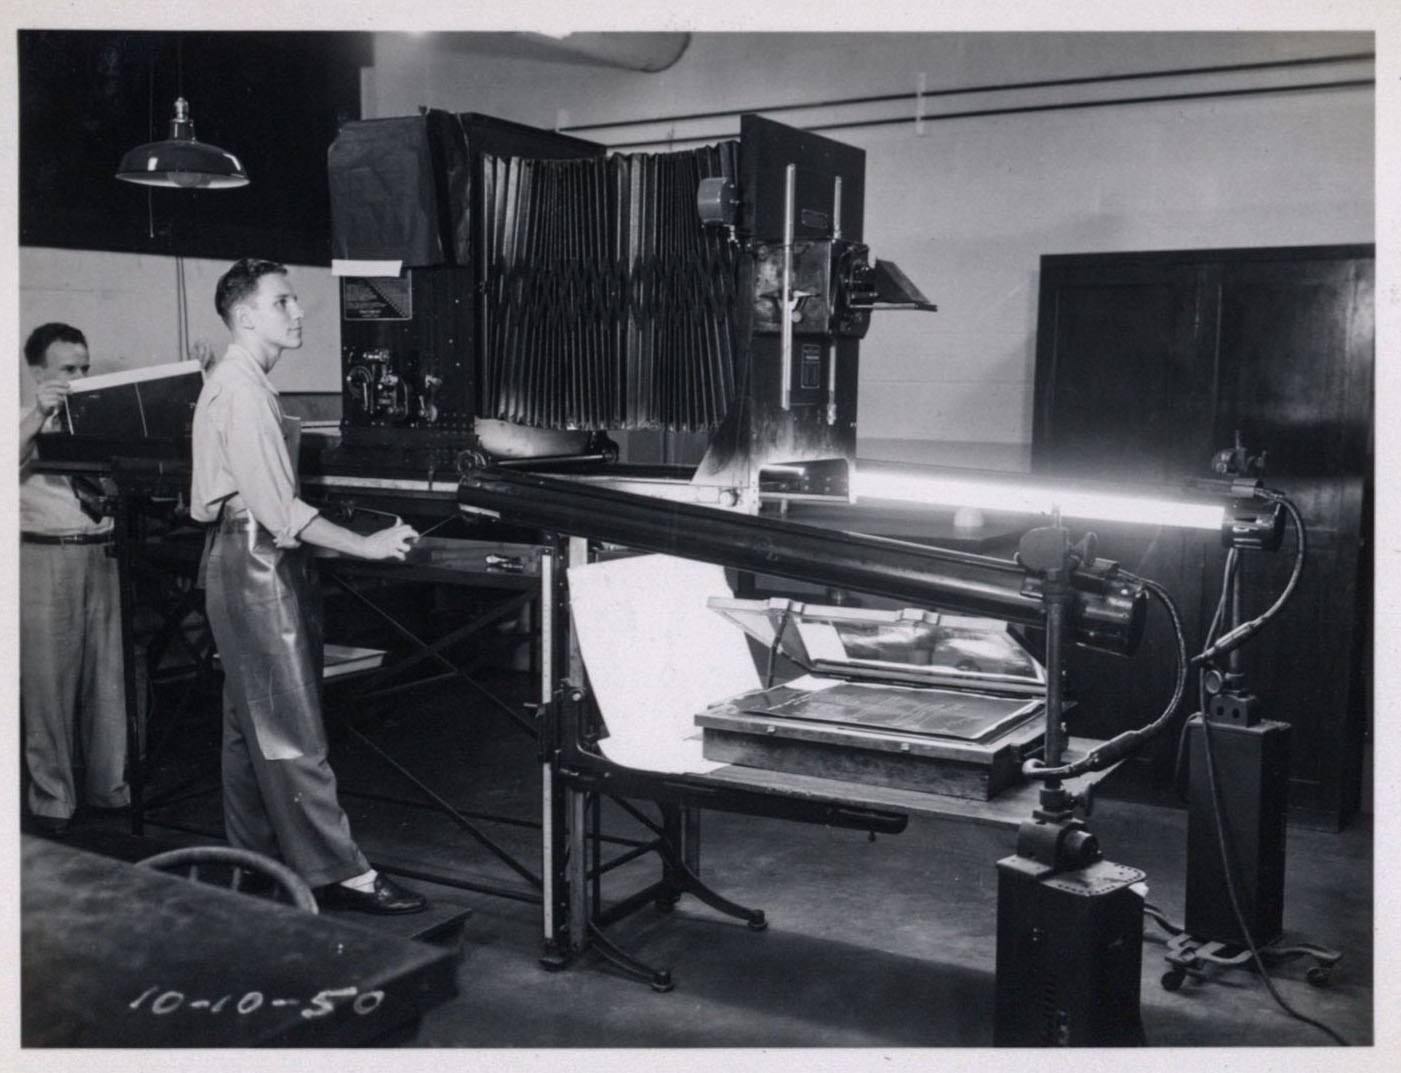 Photocopy lab at Hamilton. 1950.